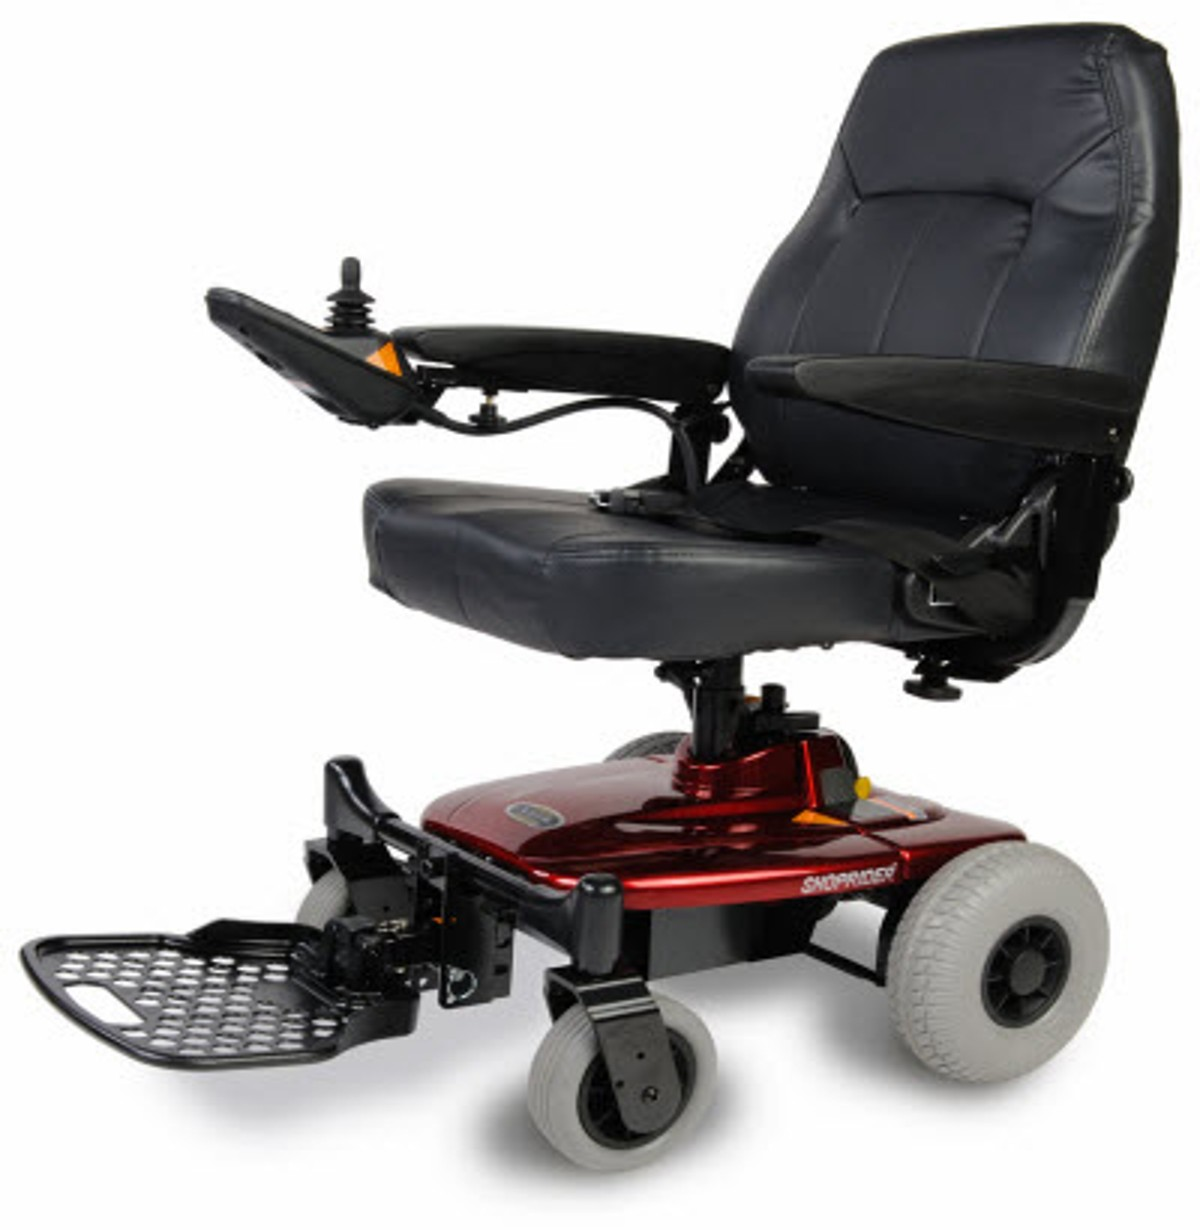 Used Power Chair Portable Power Wheelchairs Shoprider Axis Ul8w Scooter